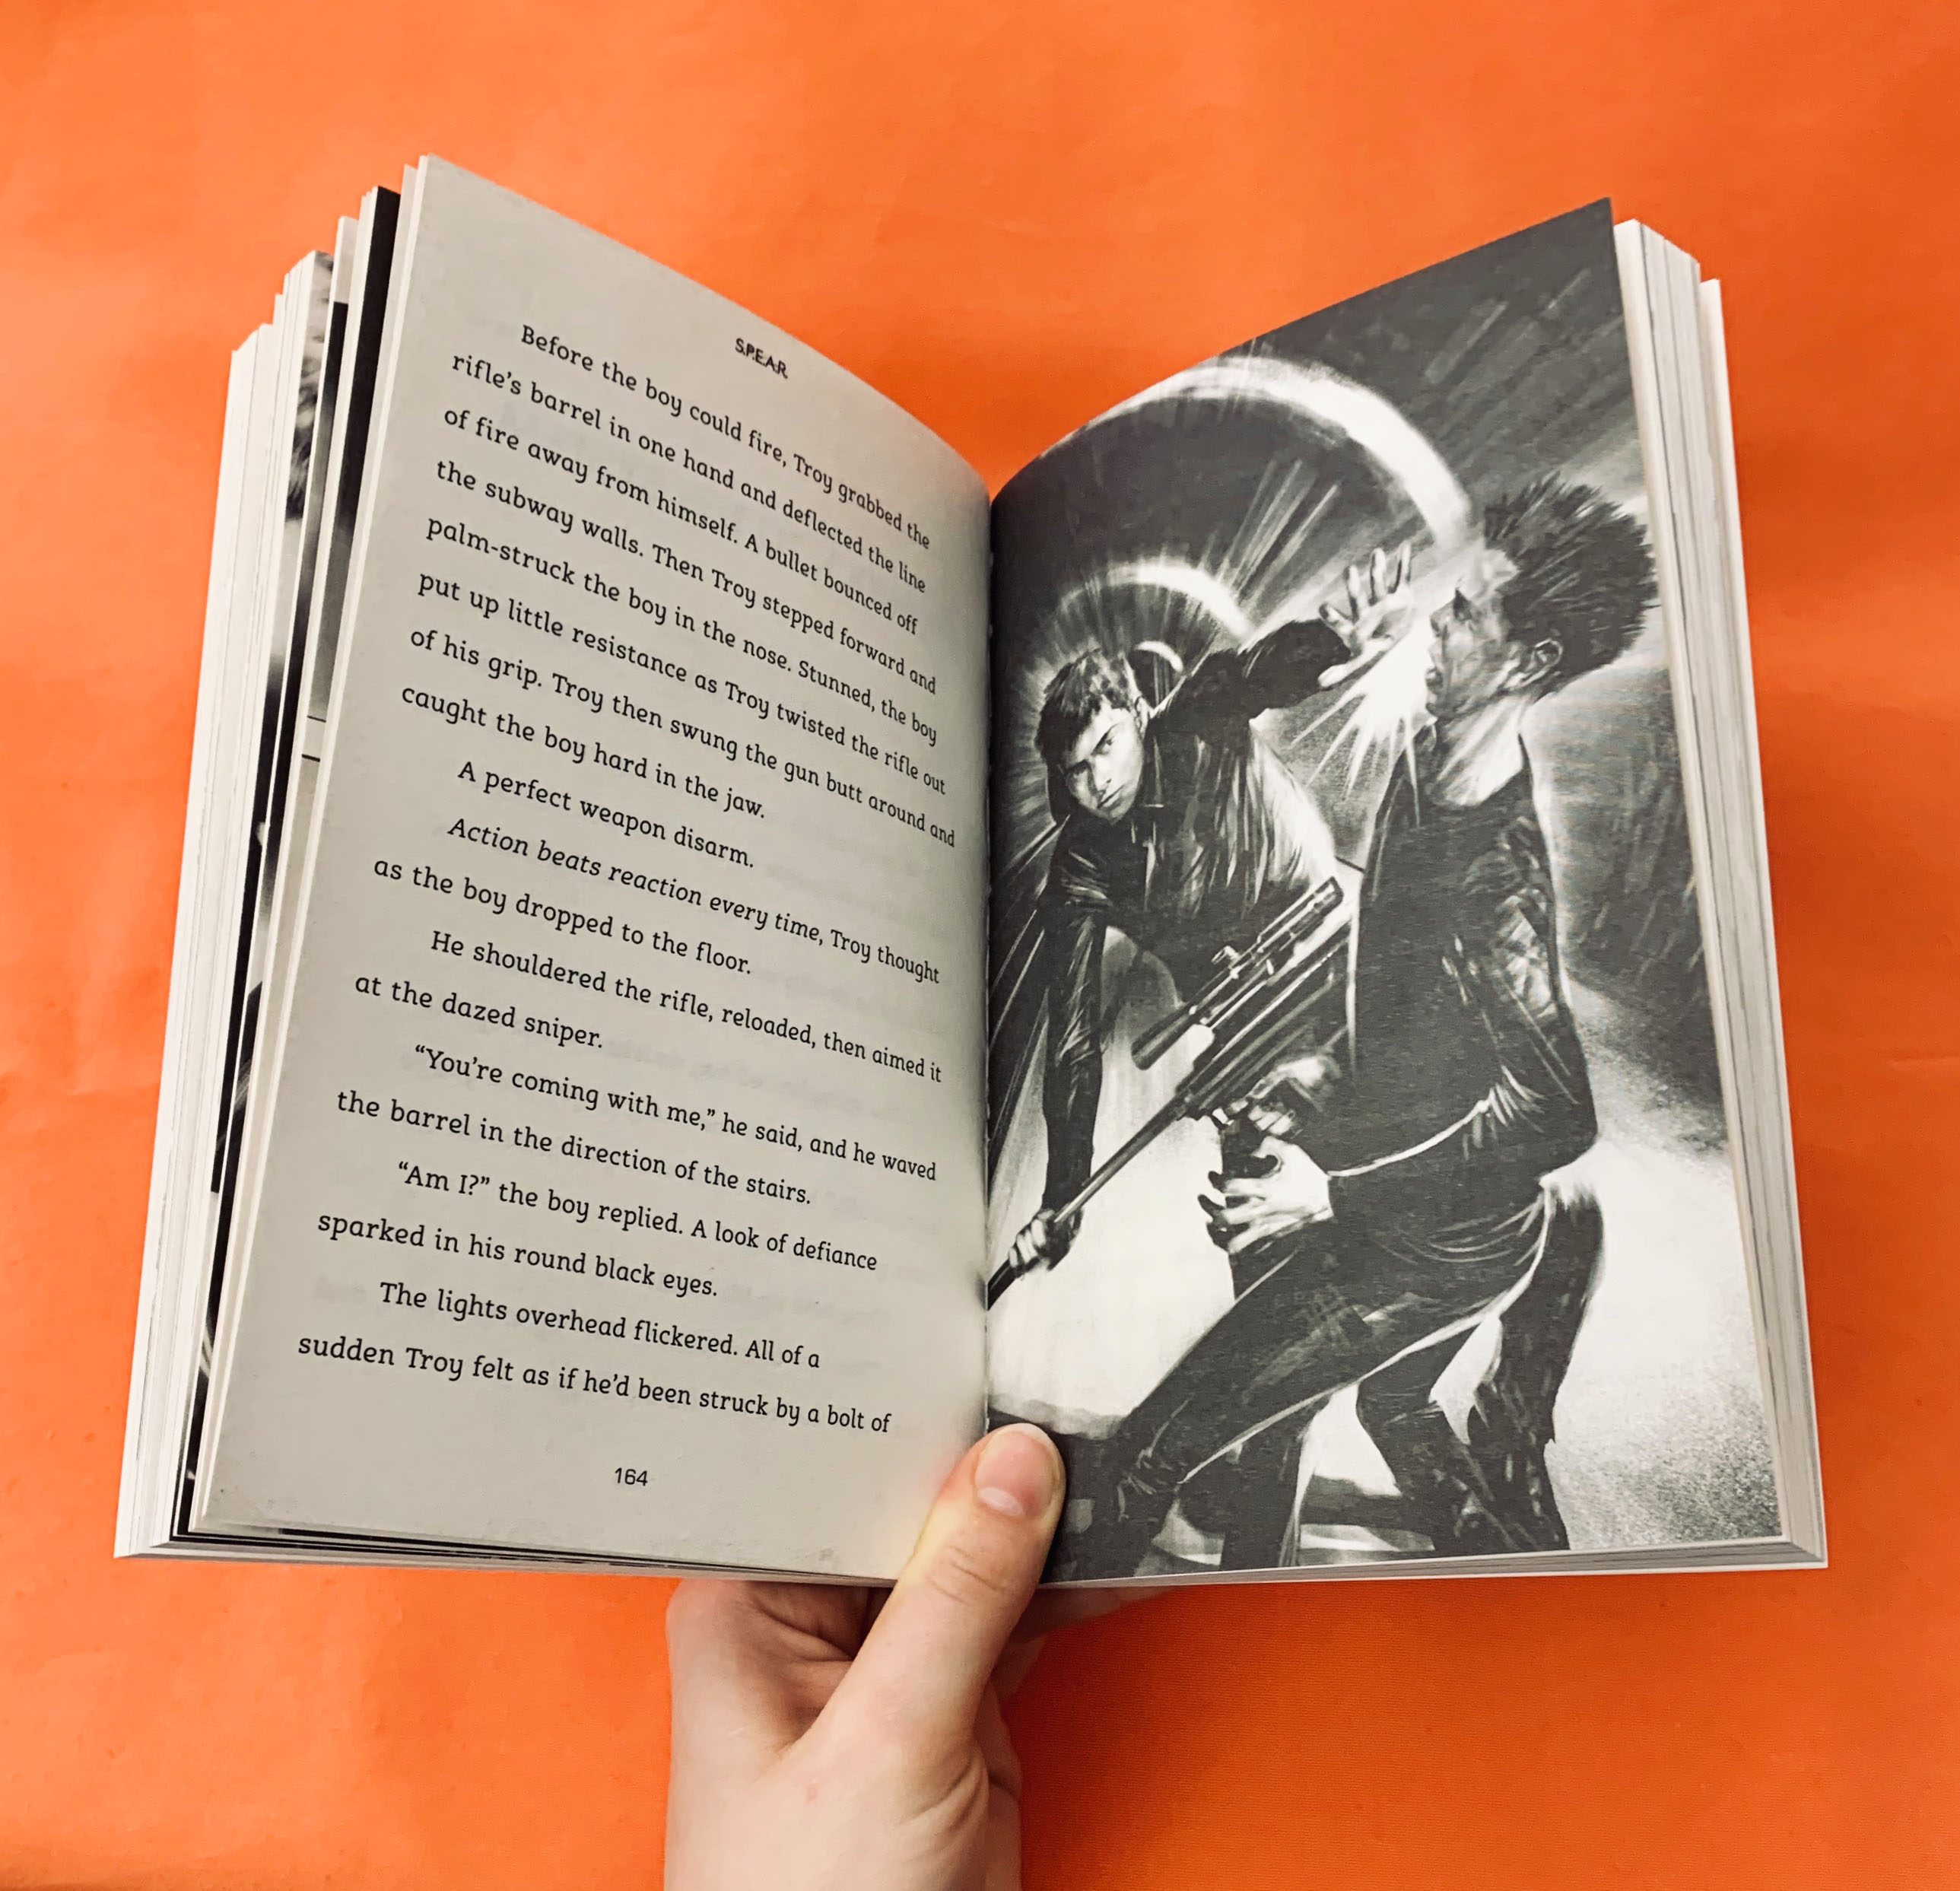 An image of the book S.P.E.A.R opened to a page with an illustration of two teenagers caught in a nail-biting fight